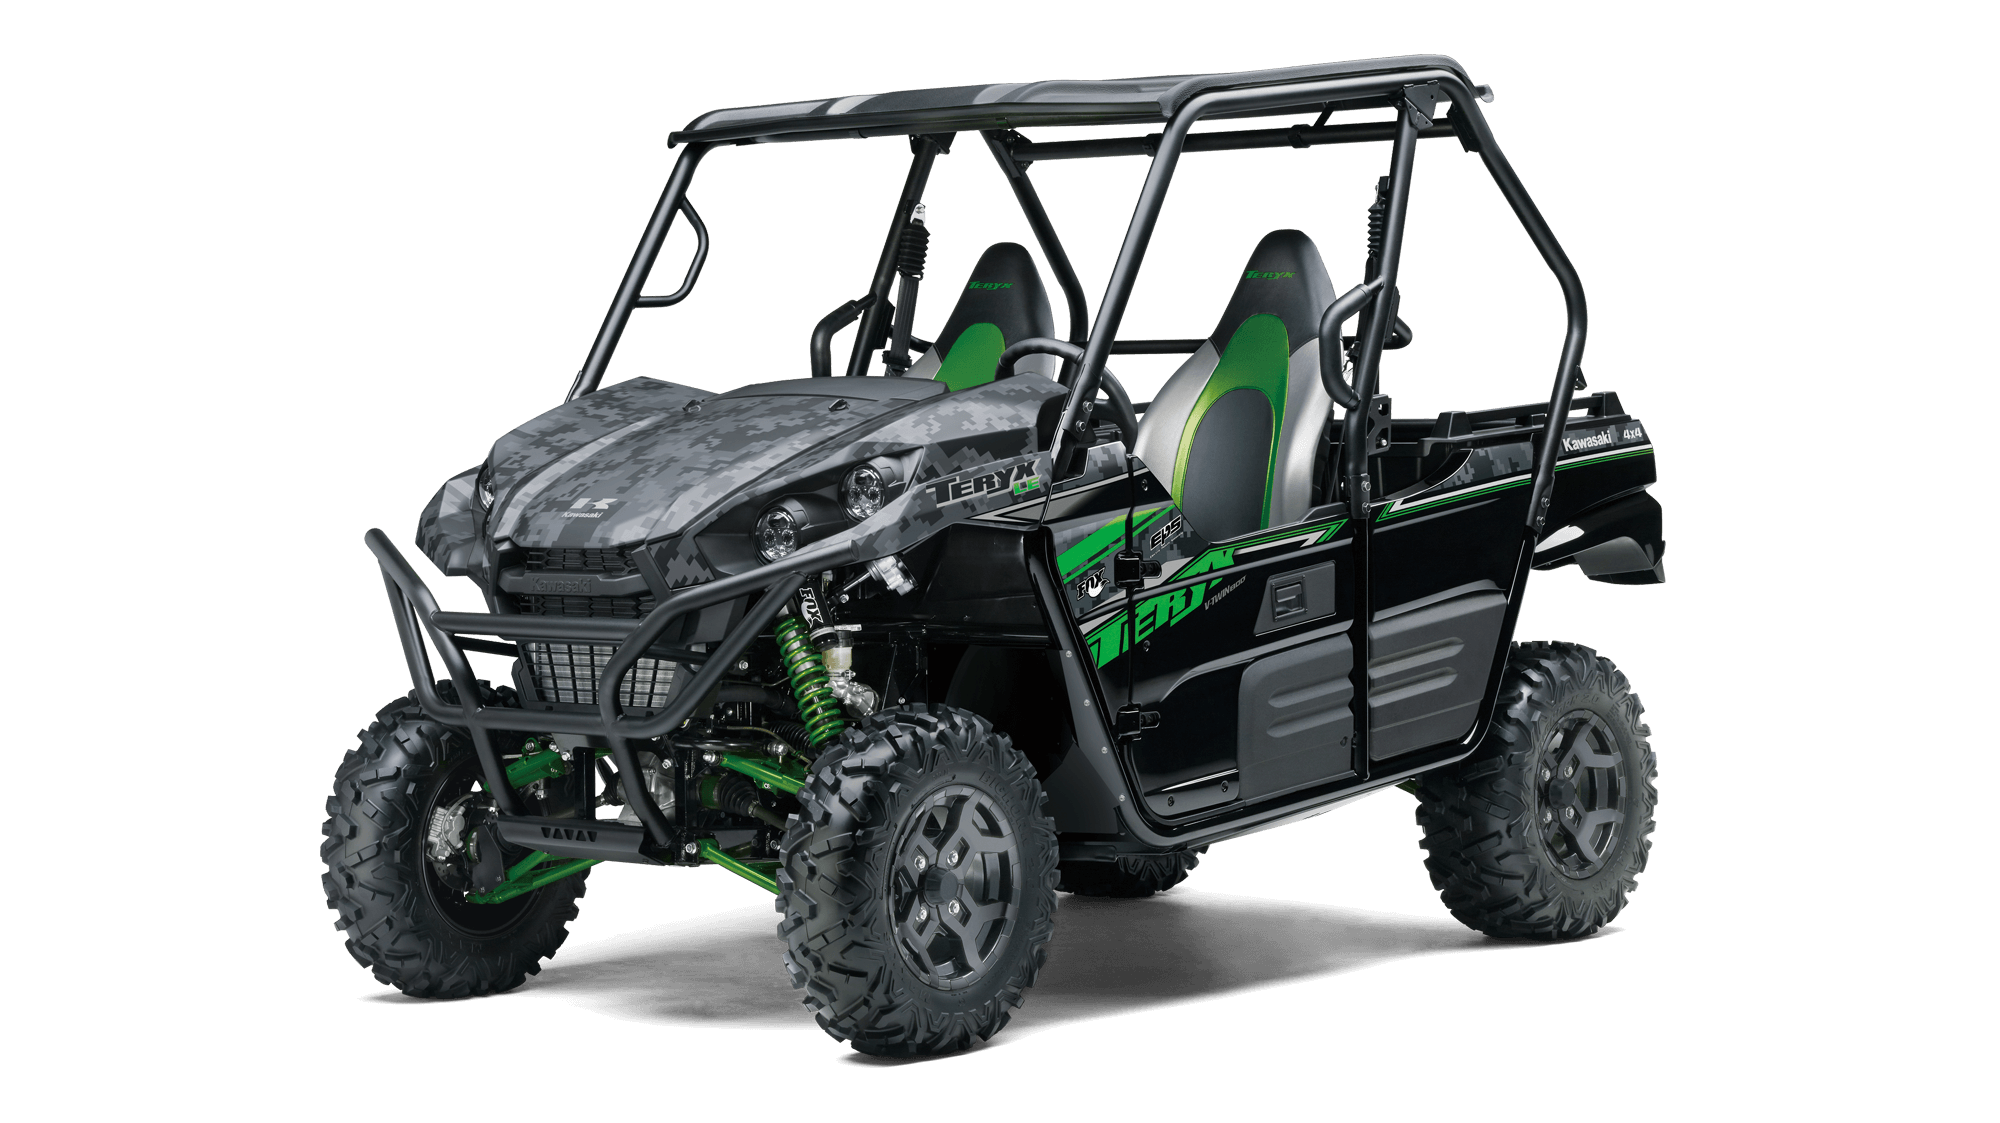 2019 teryx le teryx side x side by kawasaki. Black Bedroom Furniture Sets. Home Design Ideas